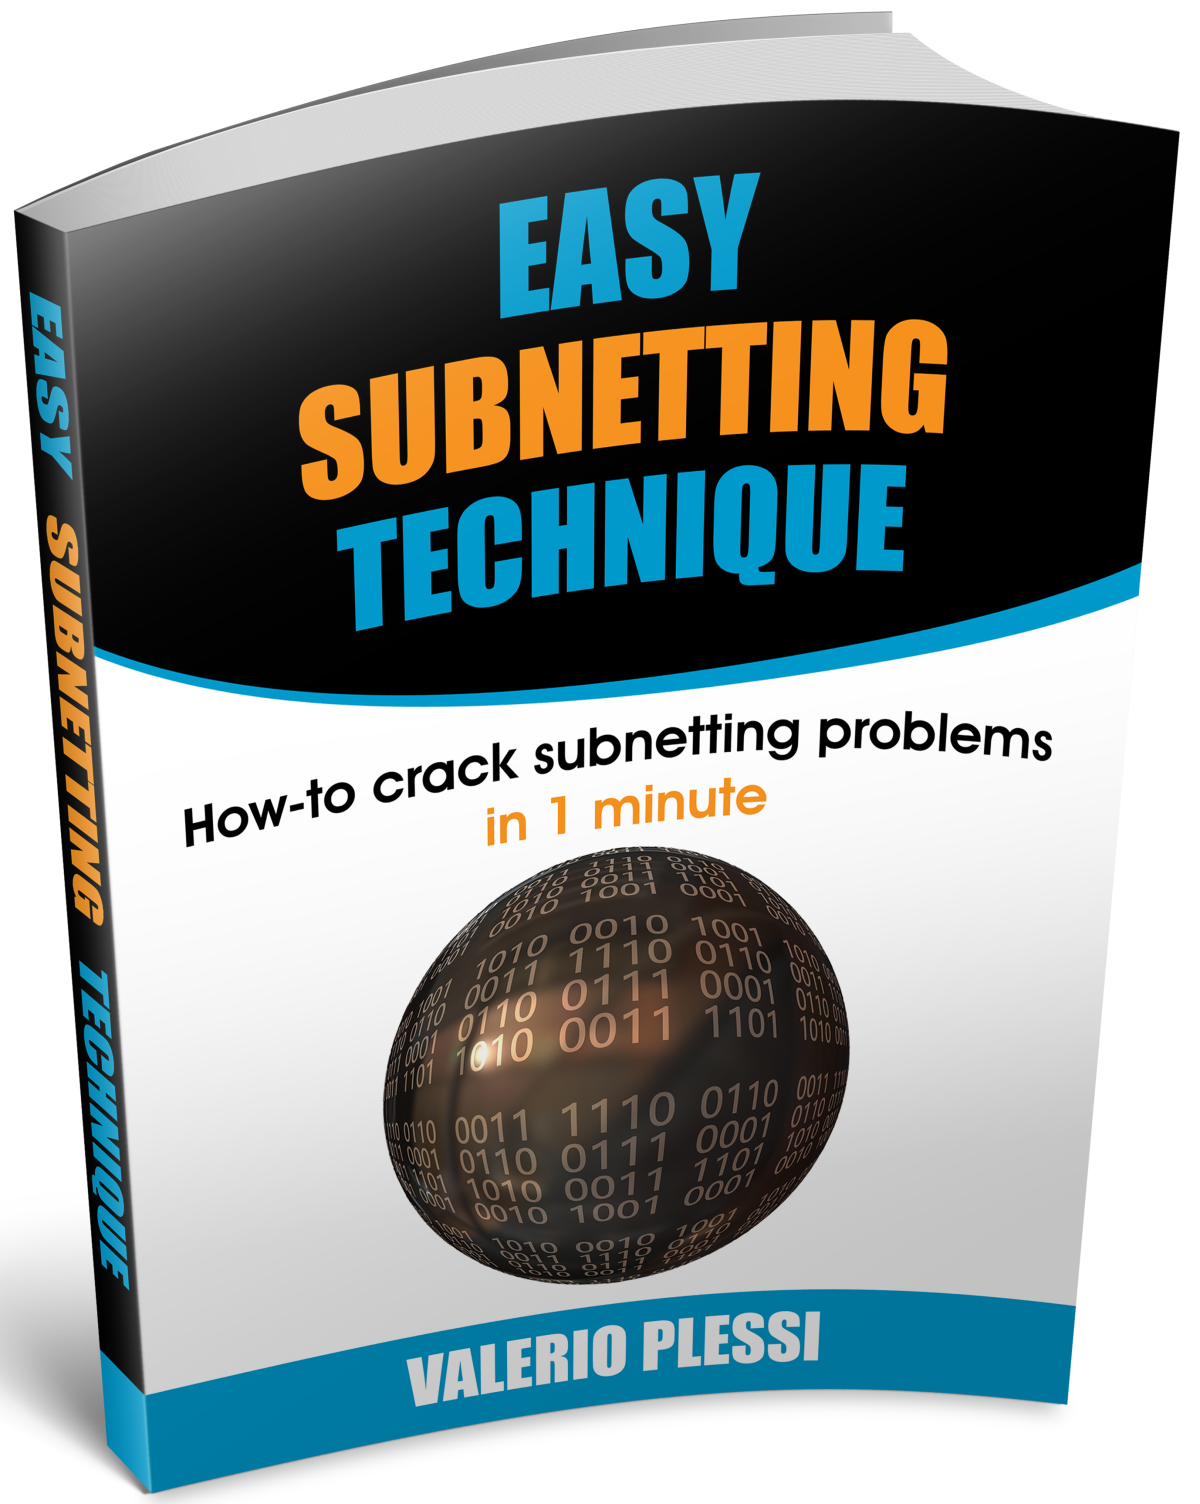 Easy Subnetting Technique ebook